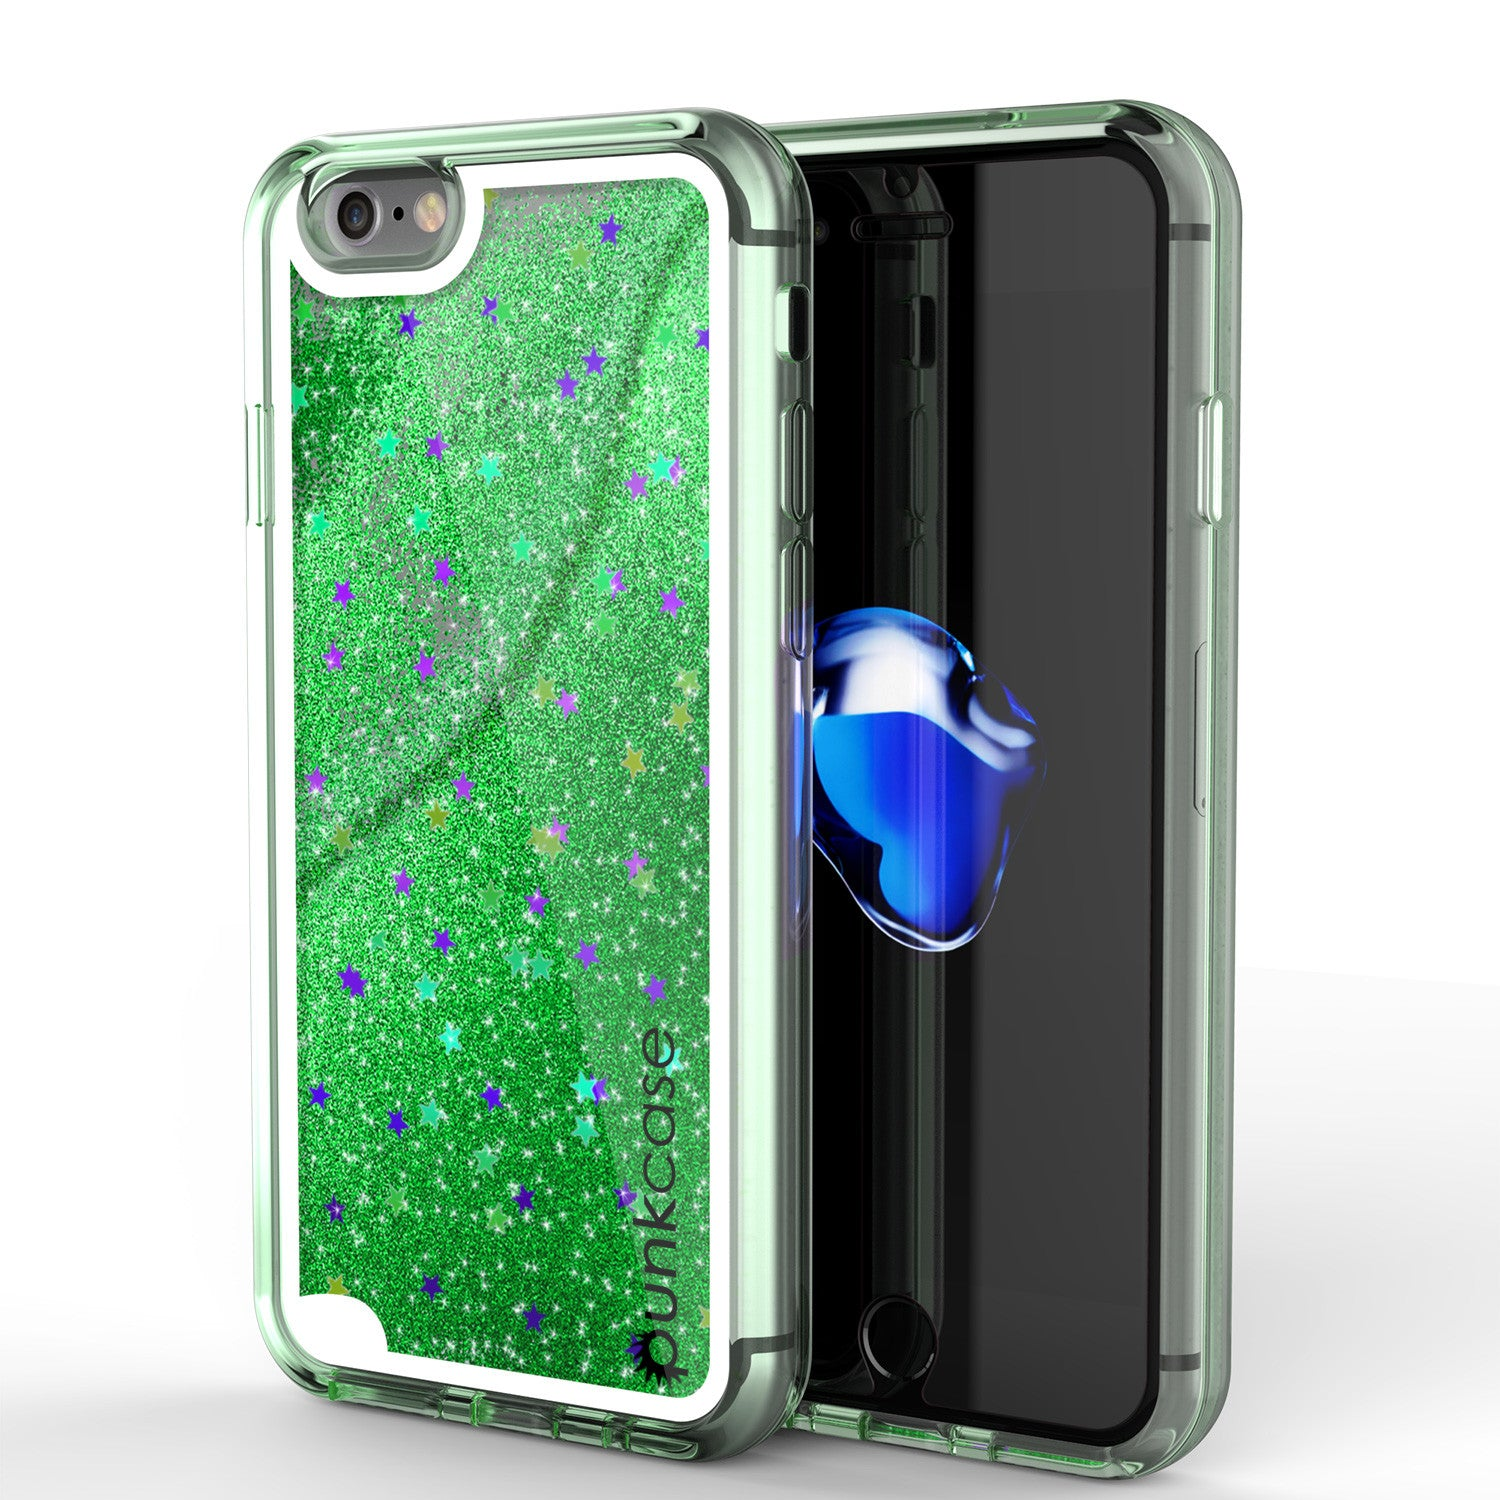 iPhone 7 Case, PunkCase LIQUID Green Series, Protective Dual Layer Floating Glitter Cover